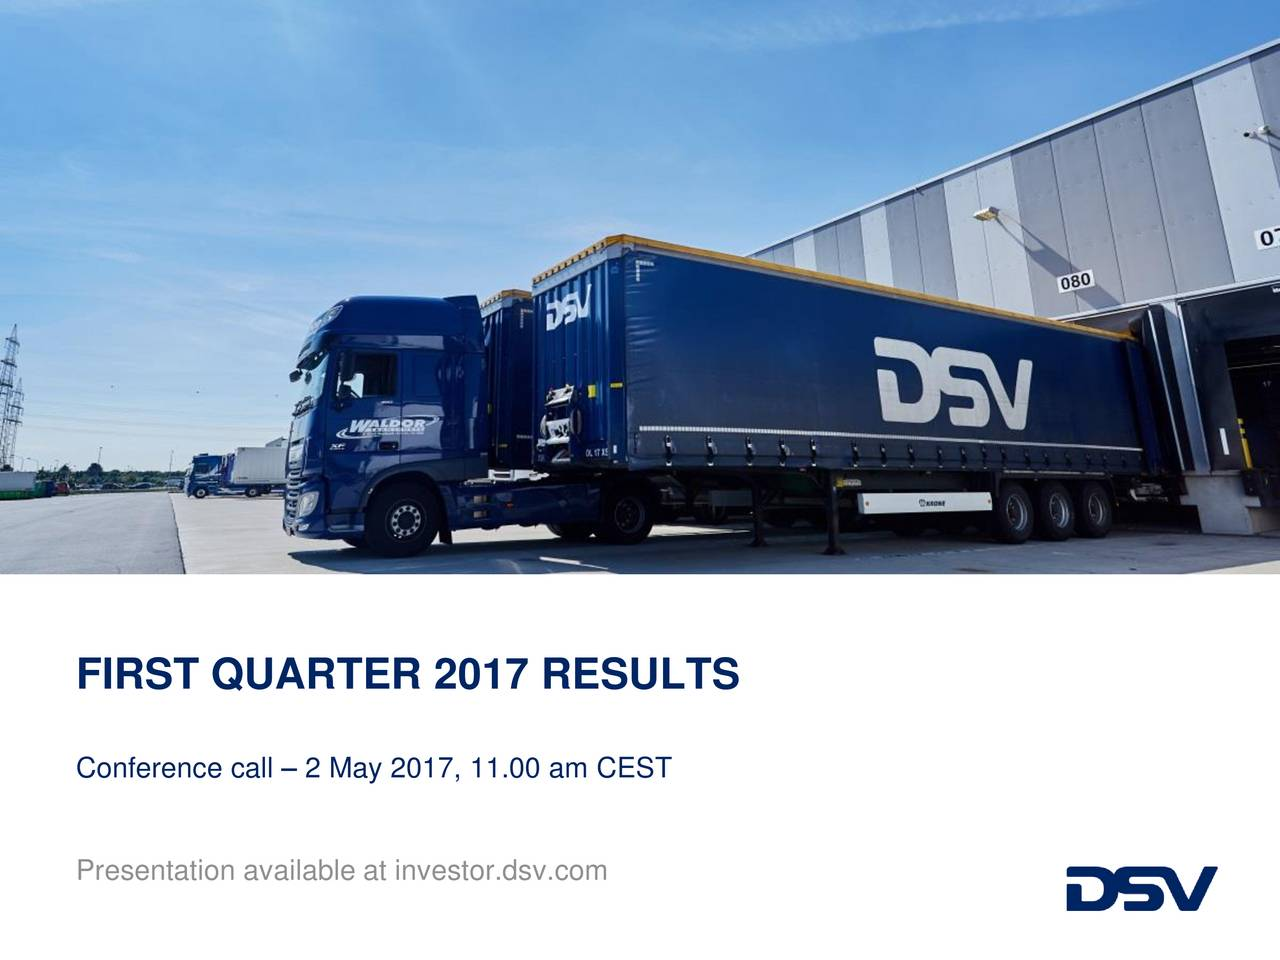 Conference call  2 May 2017, 11.00 am CEST Presentation available at investor.dsv.com